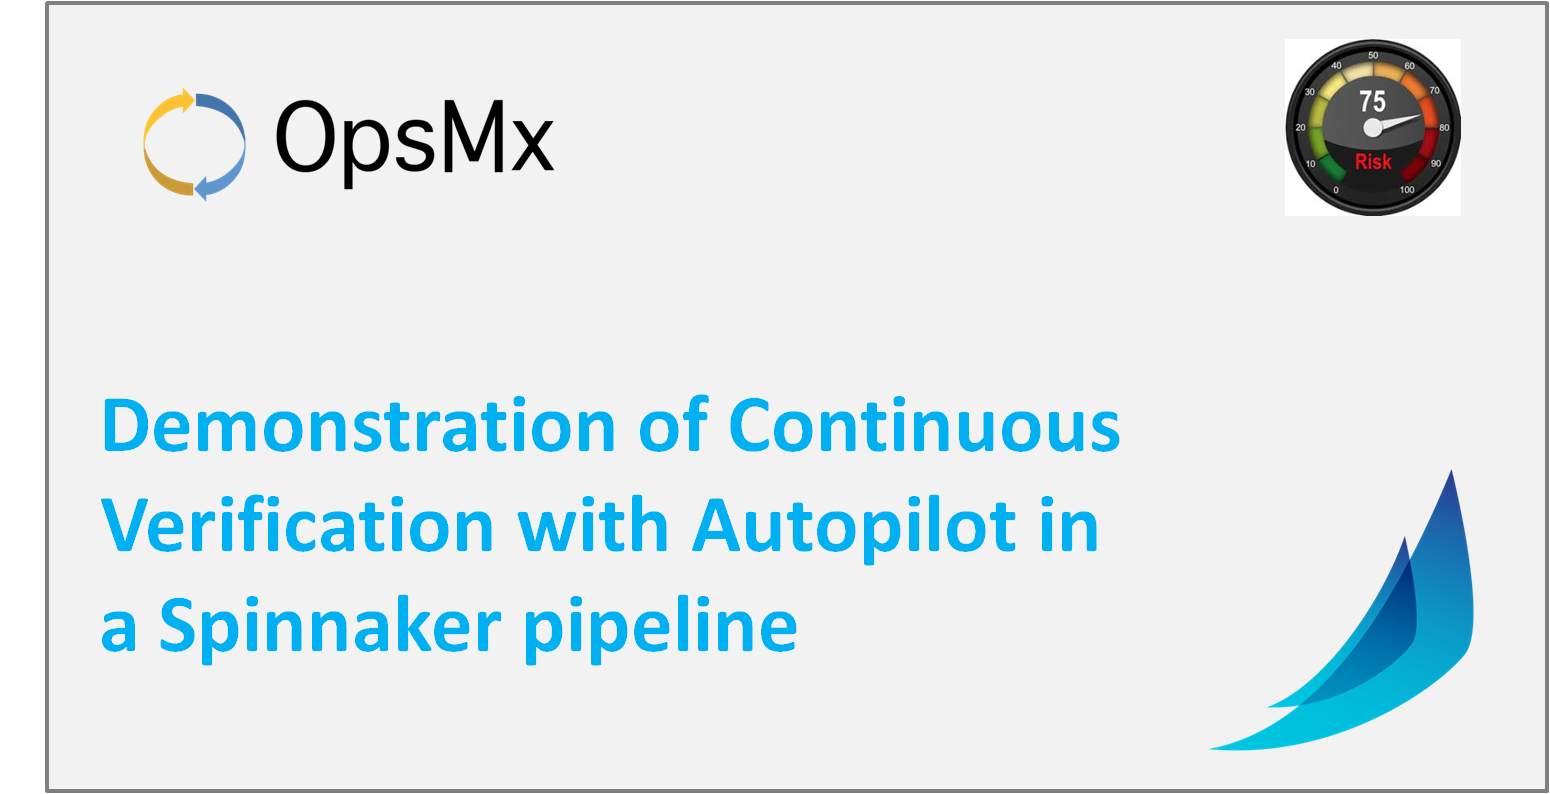 Demonstration of Continuous Verification with Autopilot in a Spinnaker pipeline